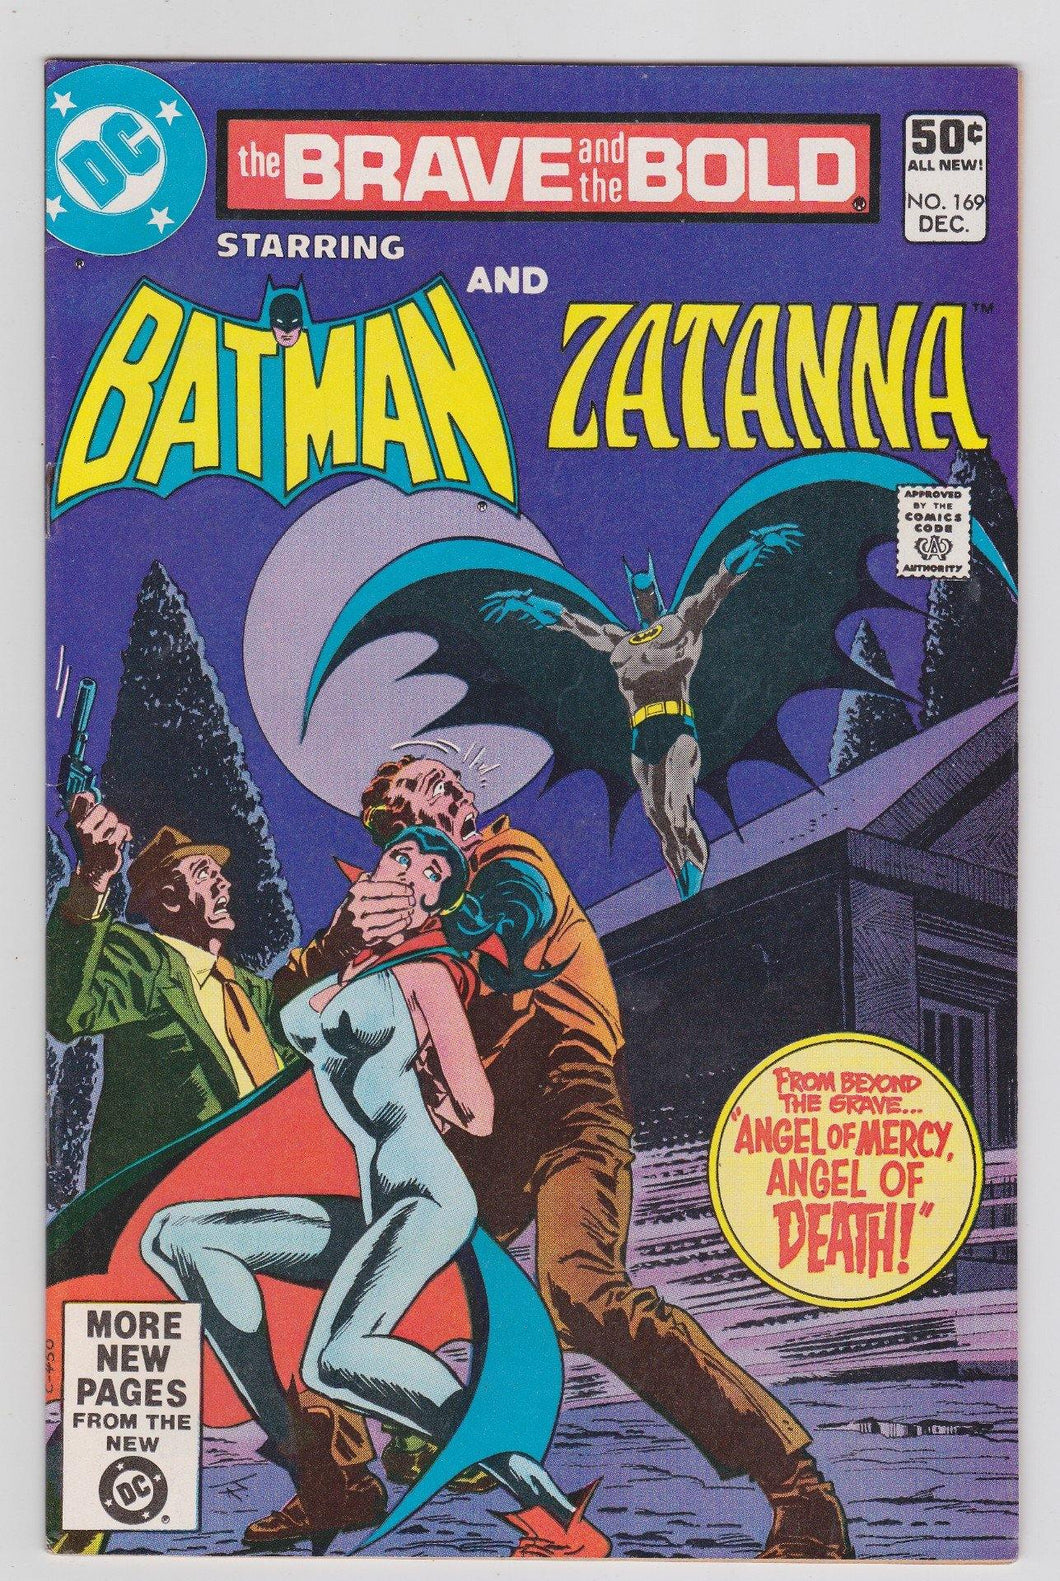 Brave and the Bold 169 with Batman and Zatanna DC Comics December 1980 - TulipStuff